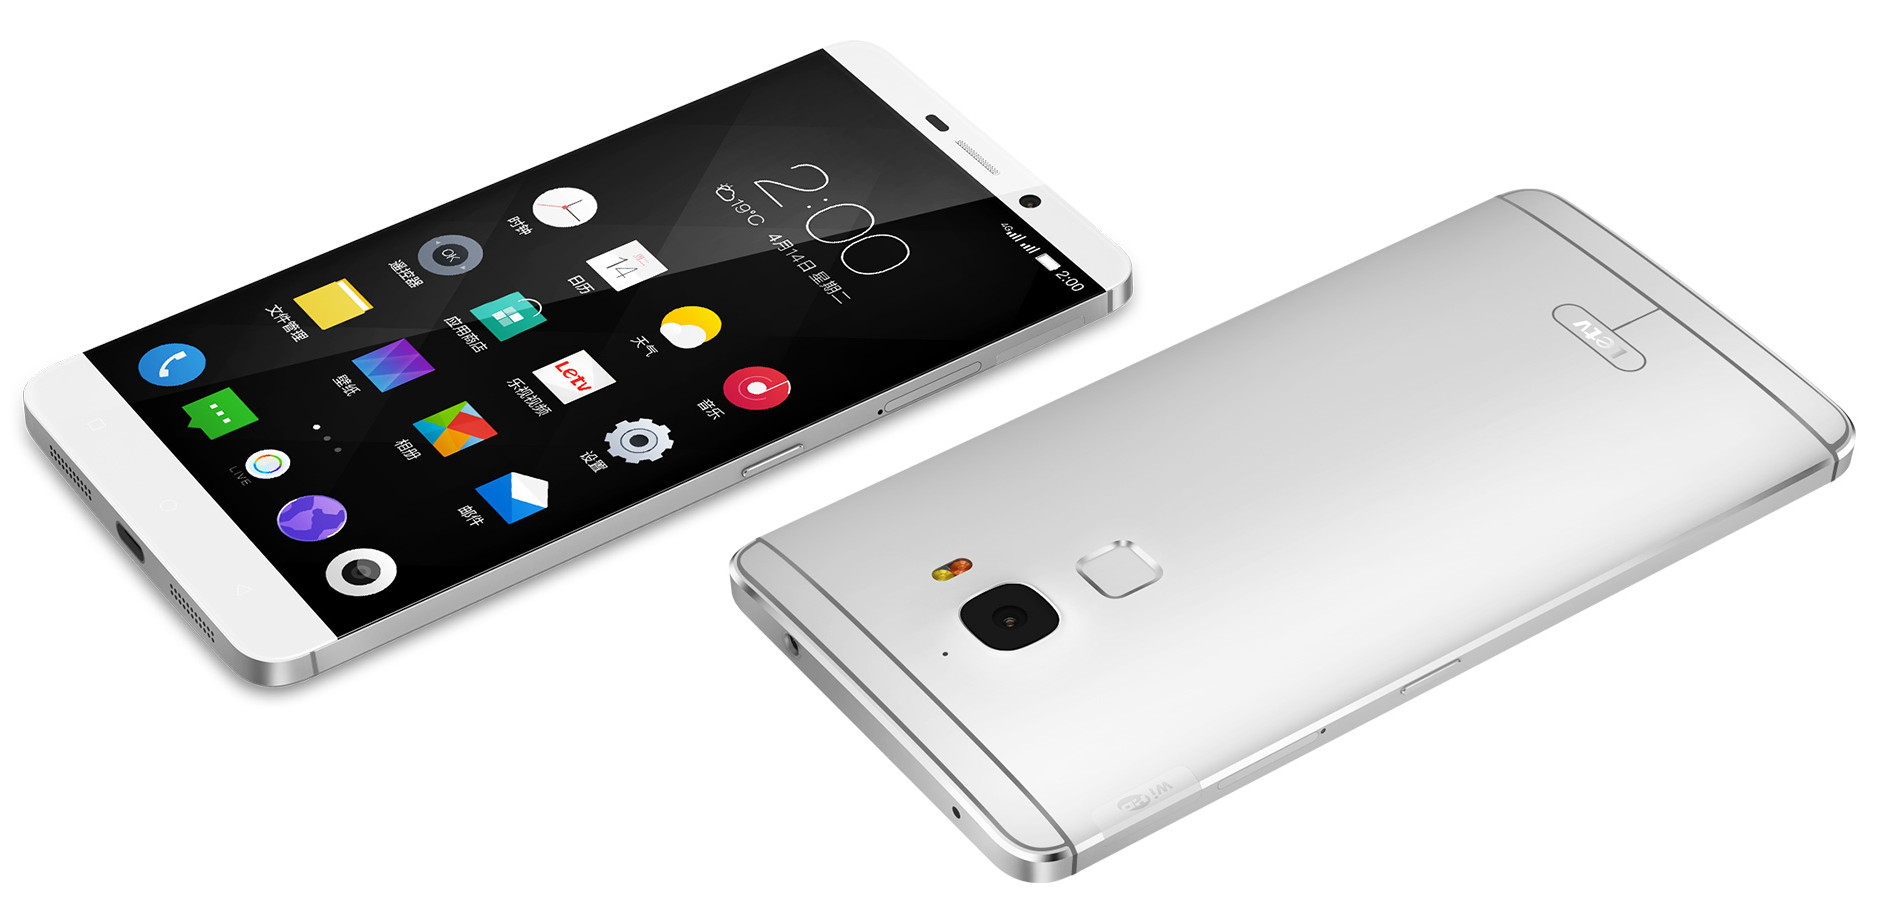 Huawei Honor Play 4C, Xiaomi Mi 4i, Letv One review from 1949deal 4